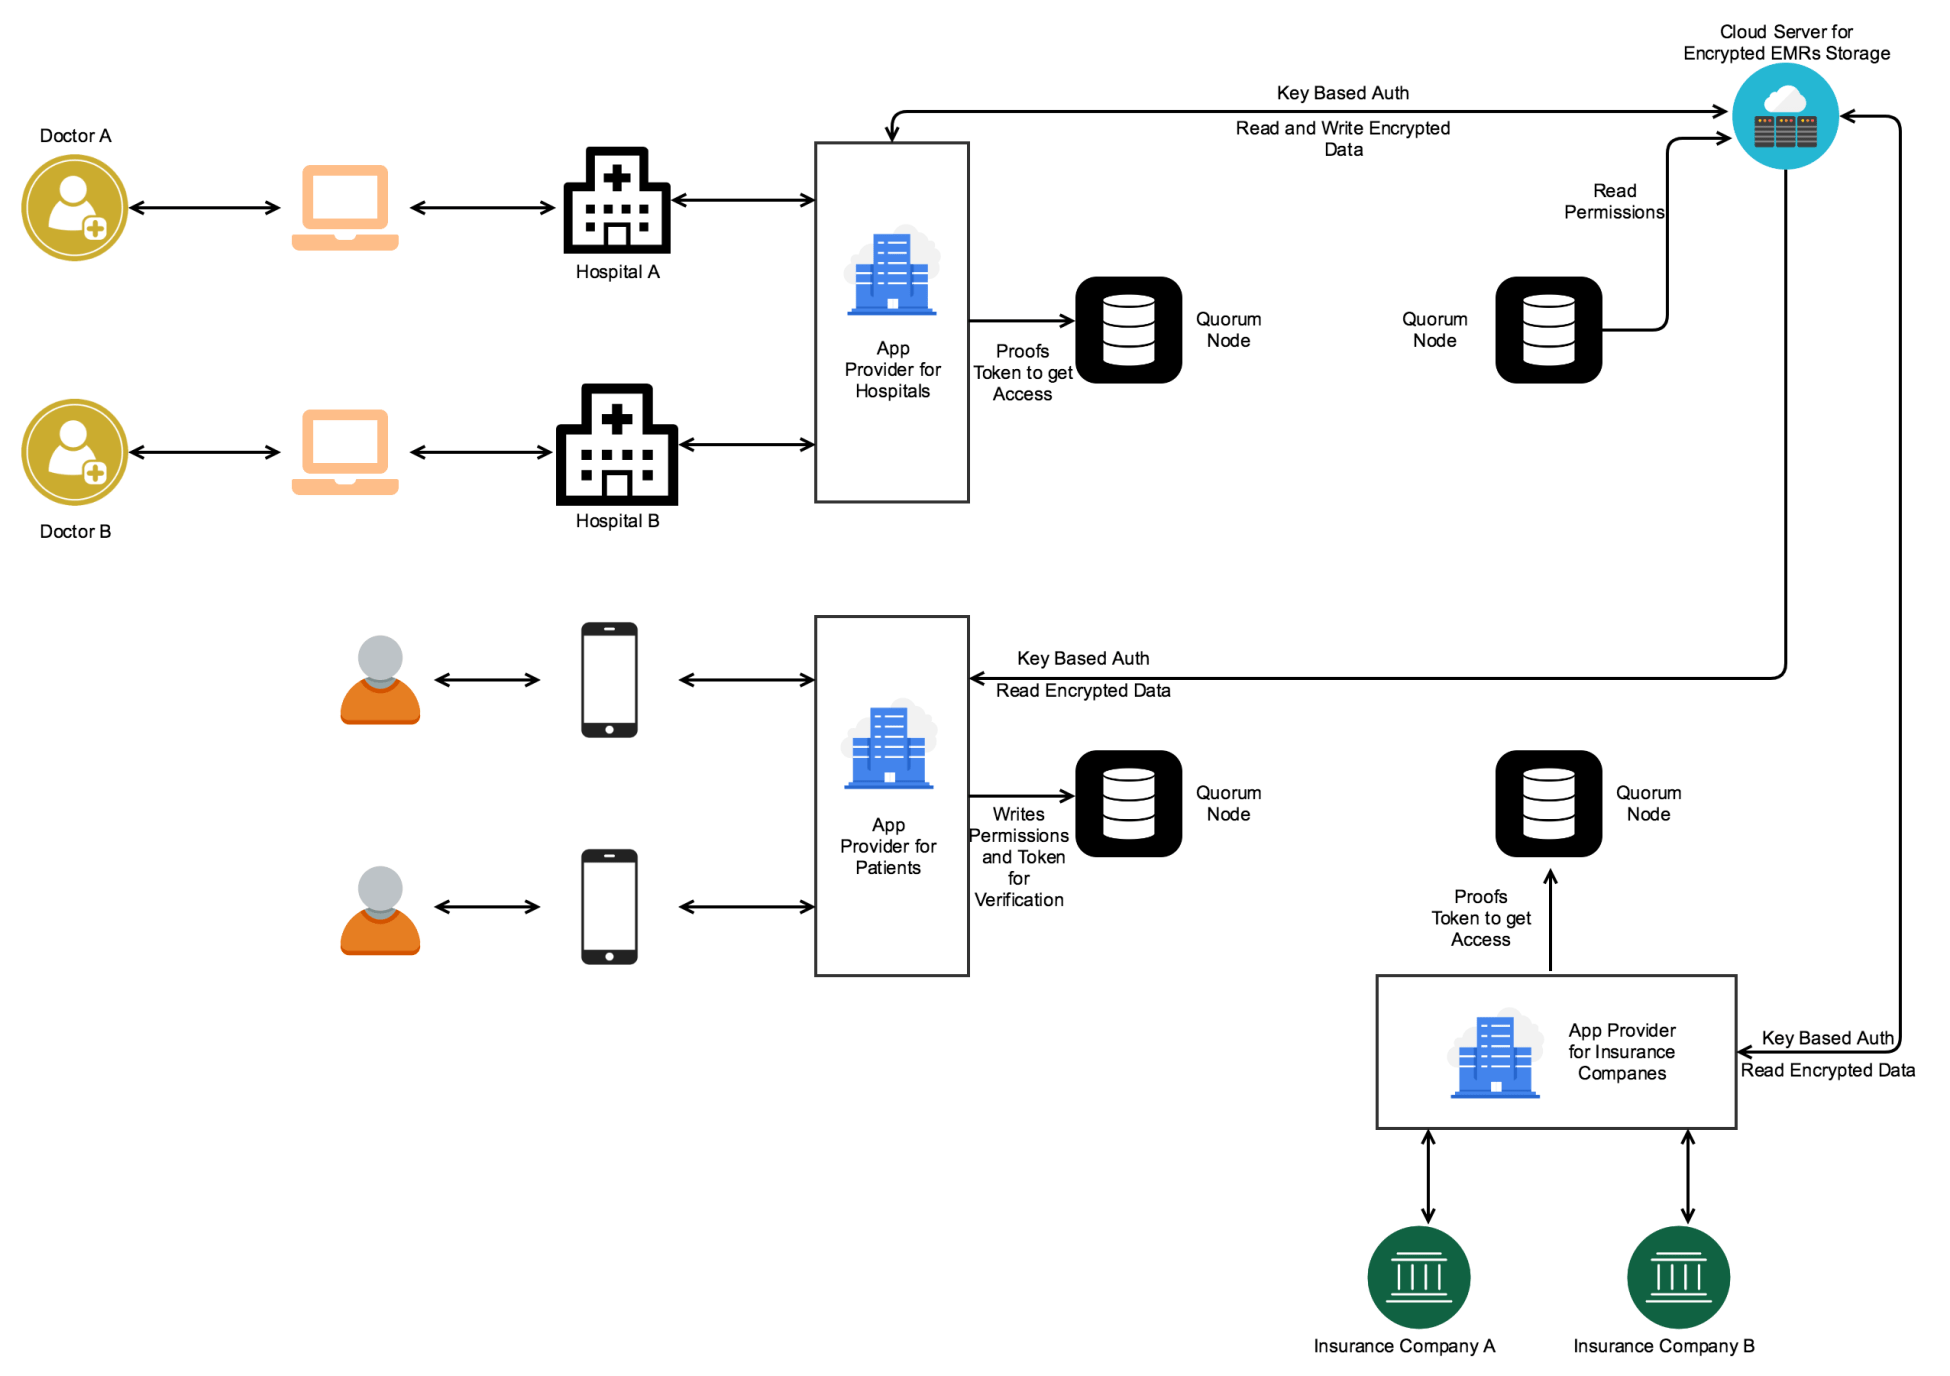 Architecting Dapp For Emrs